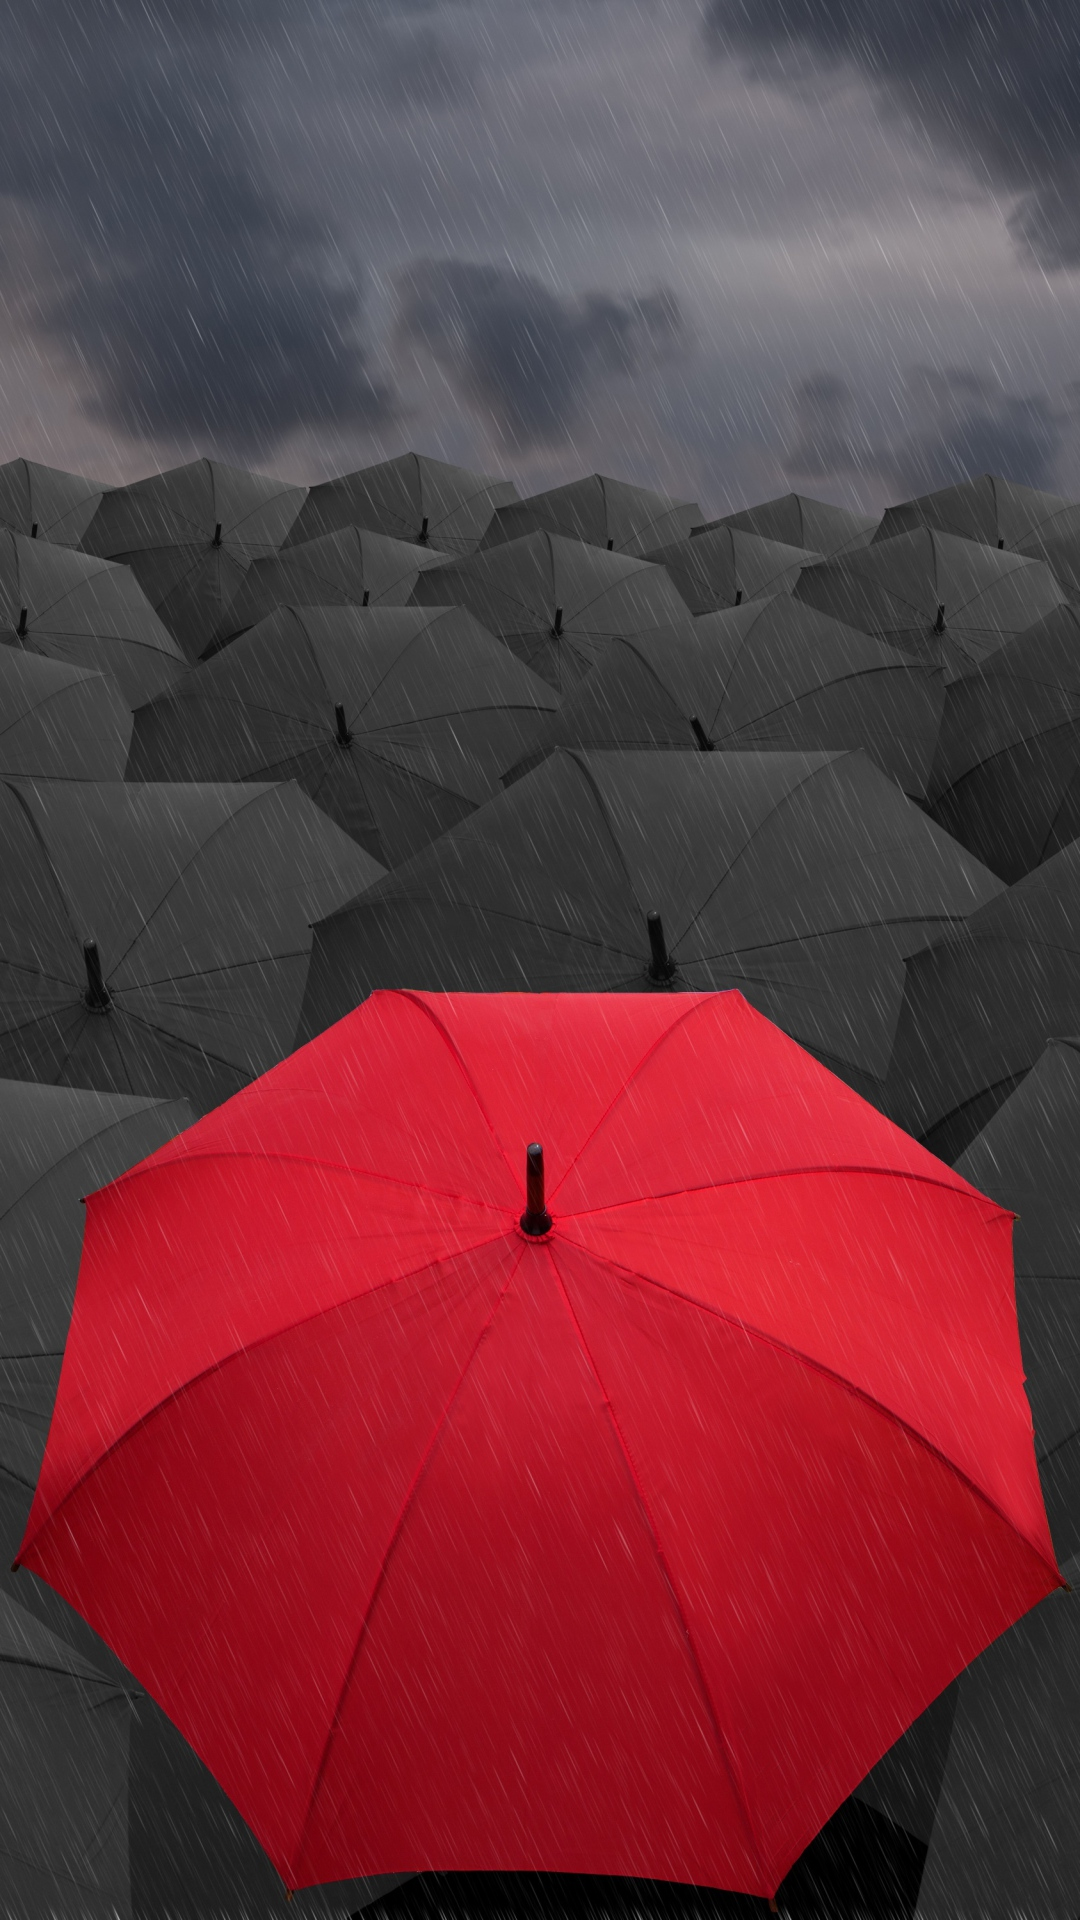 download the android the red umbrella wallpaper